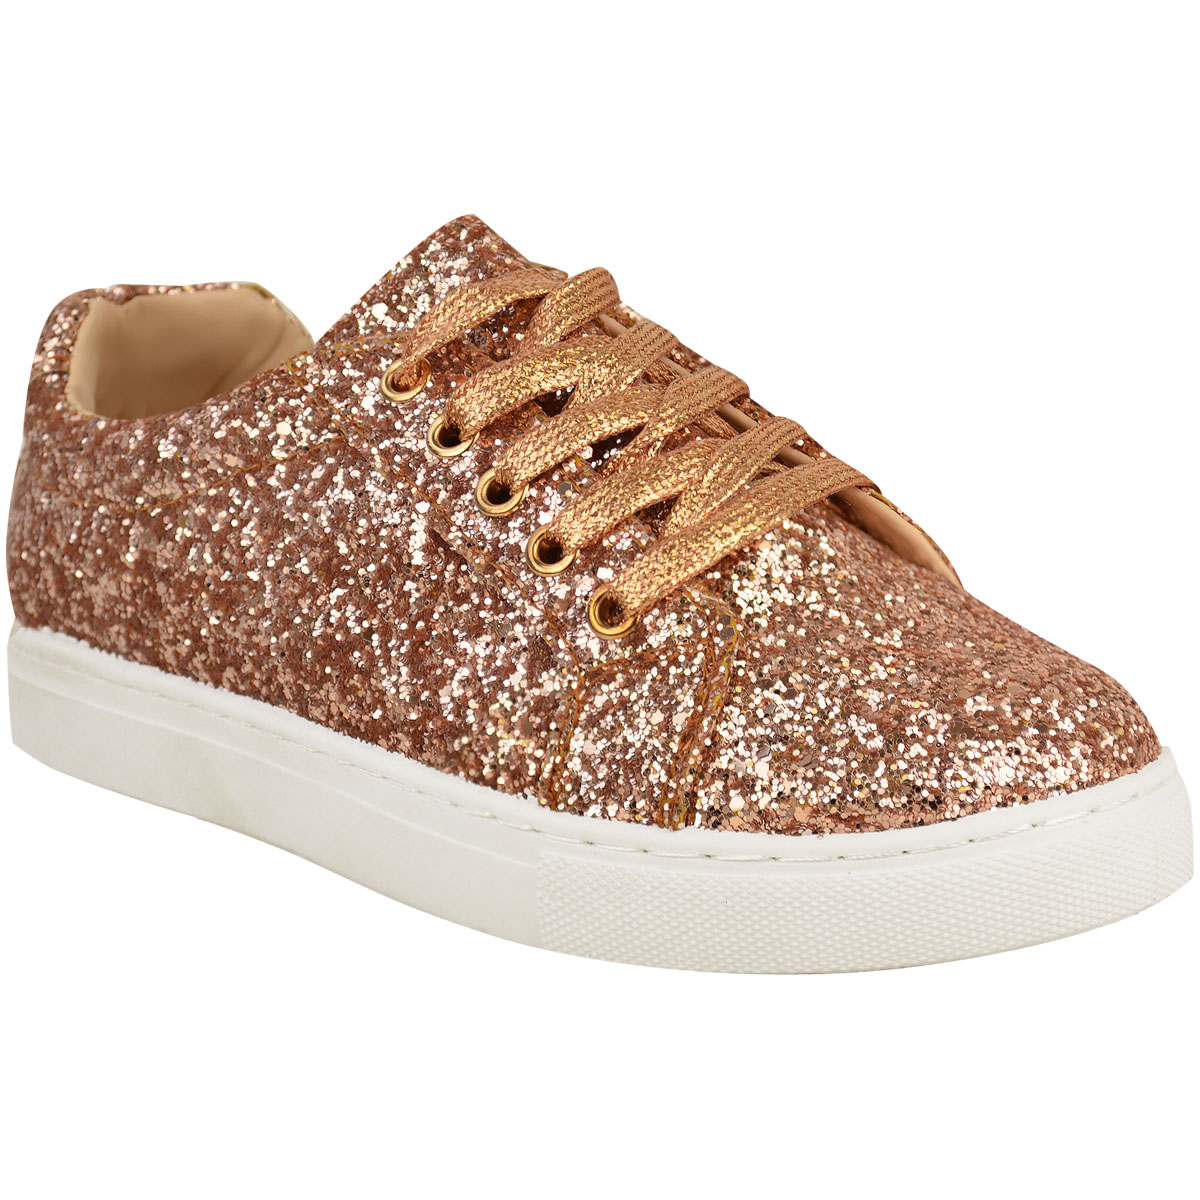 Womens Ladies Lace Up Glitter Sparkly Trainers Sneakers Gym Pumps ... 795376cdd3